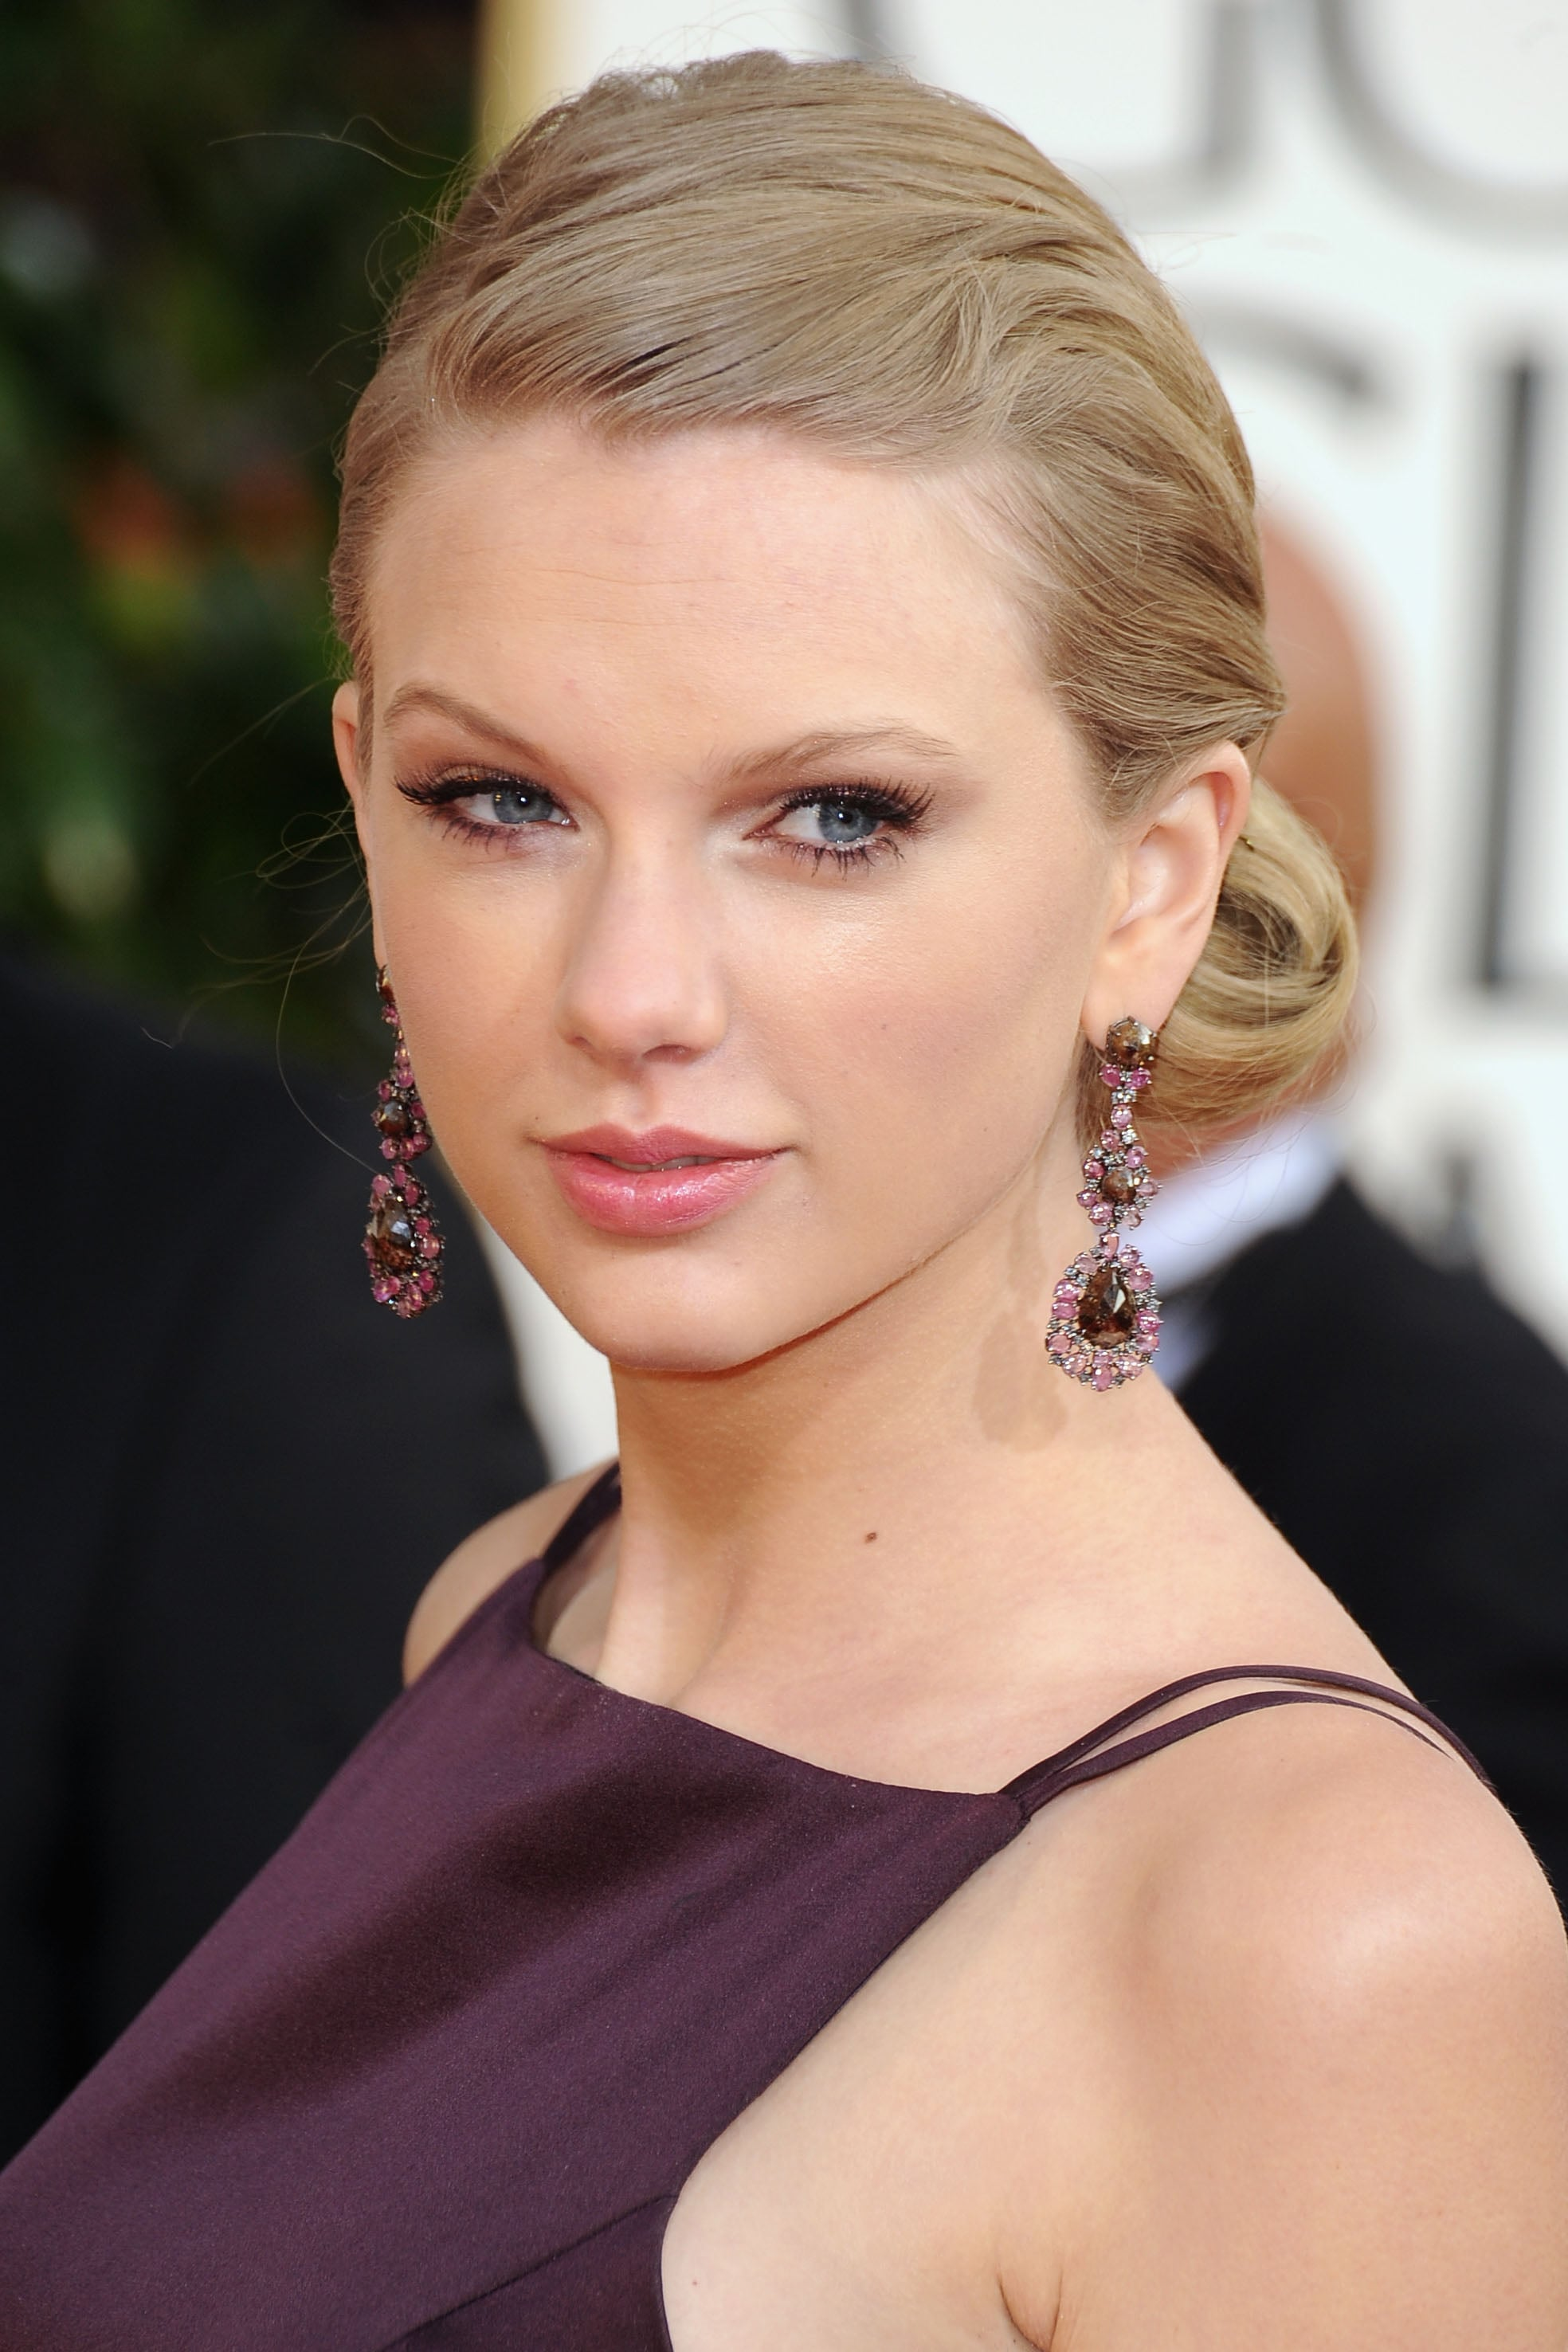 Taylor Swift arrived at the 2013 Golden Globes.